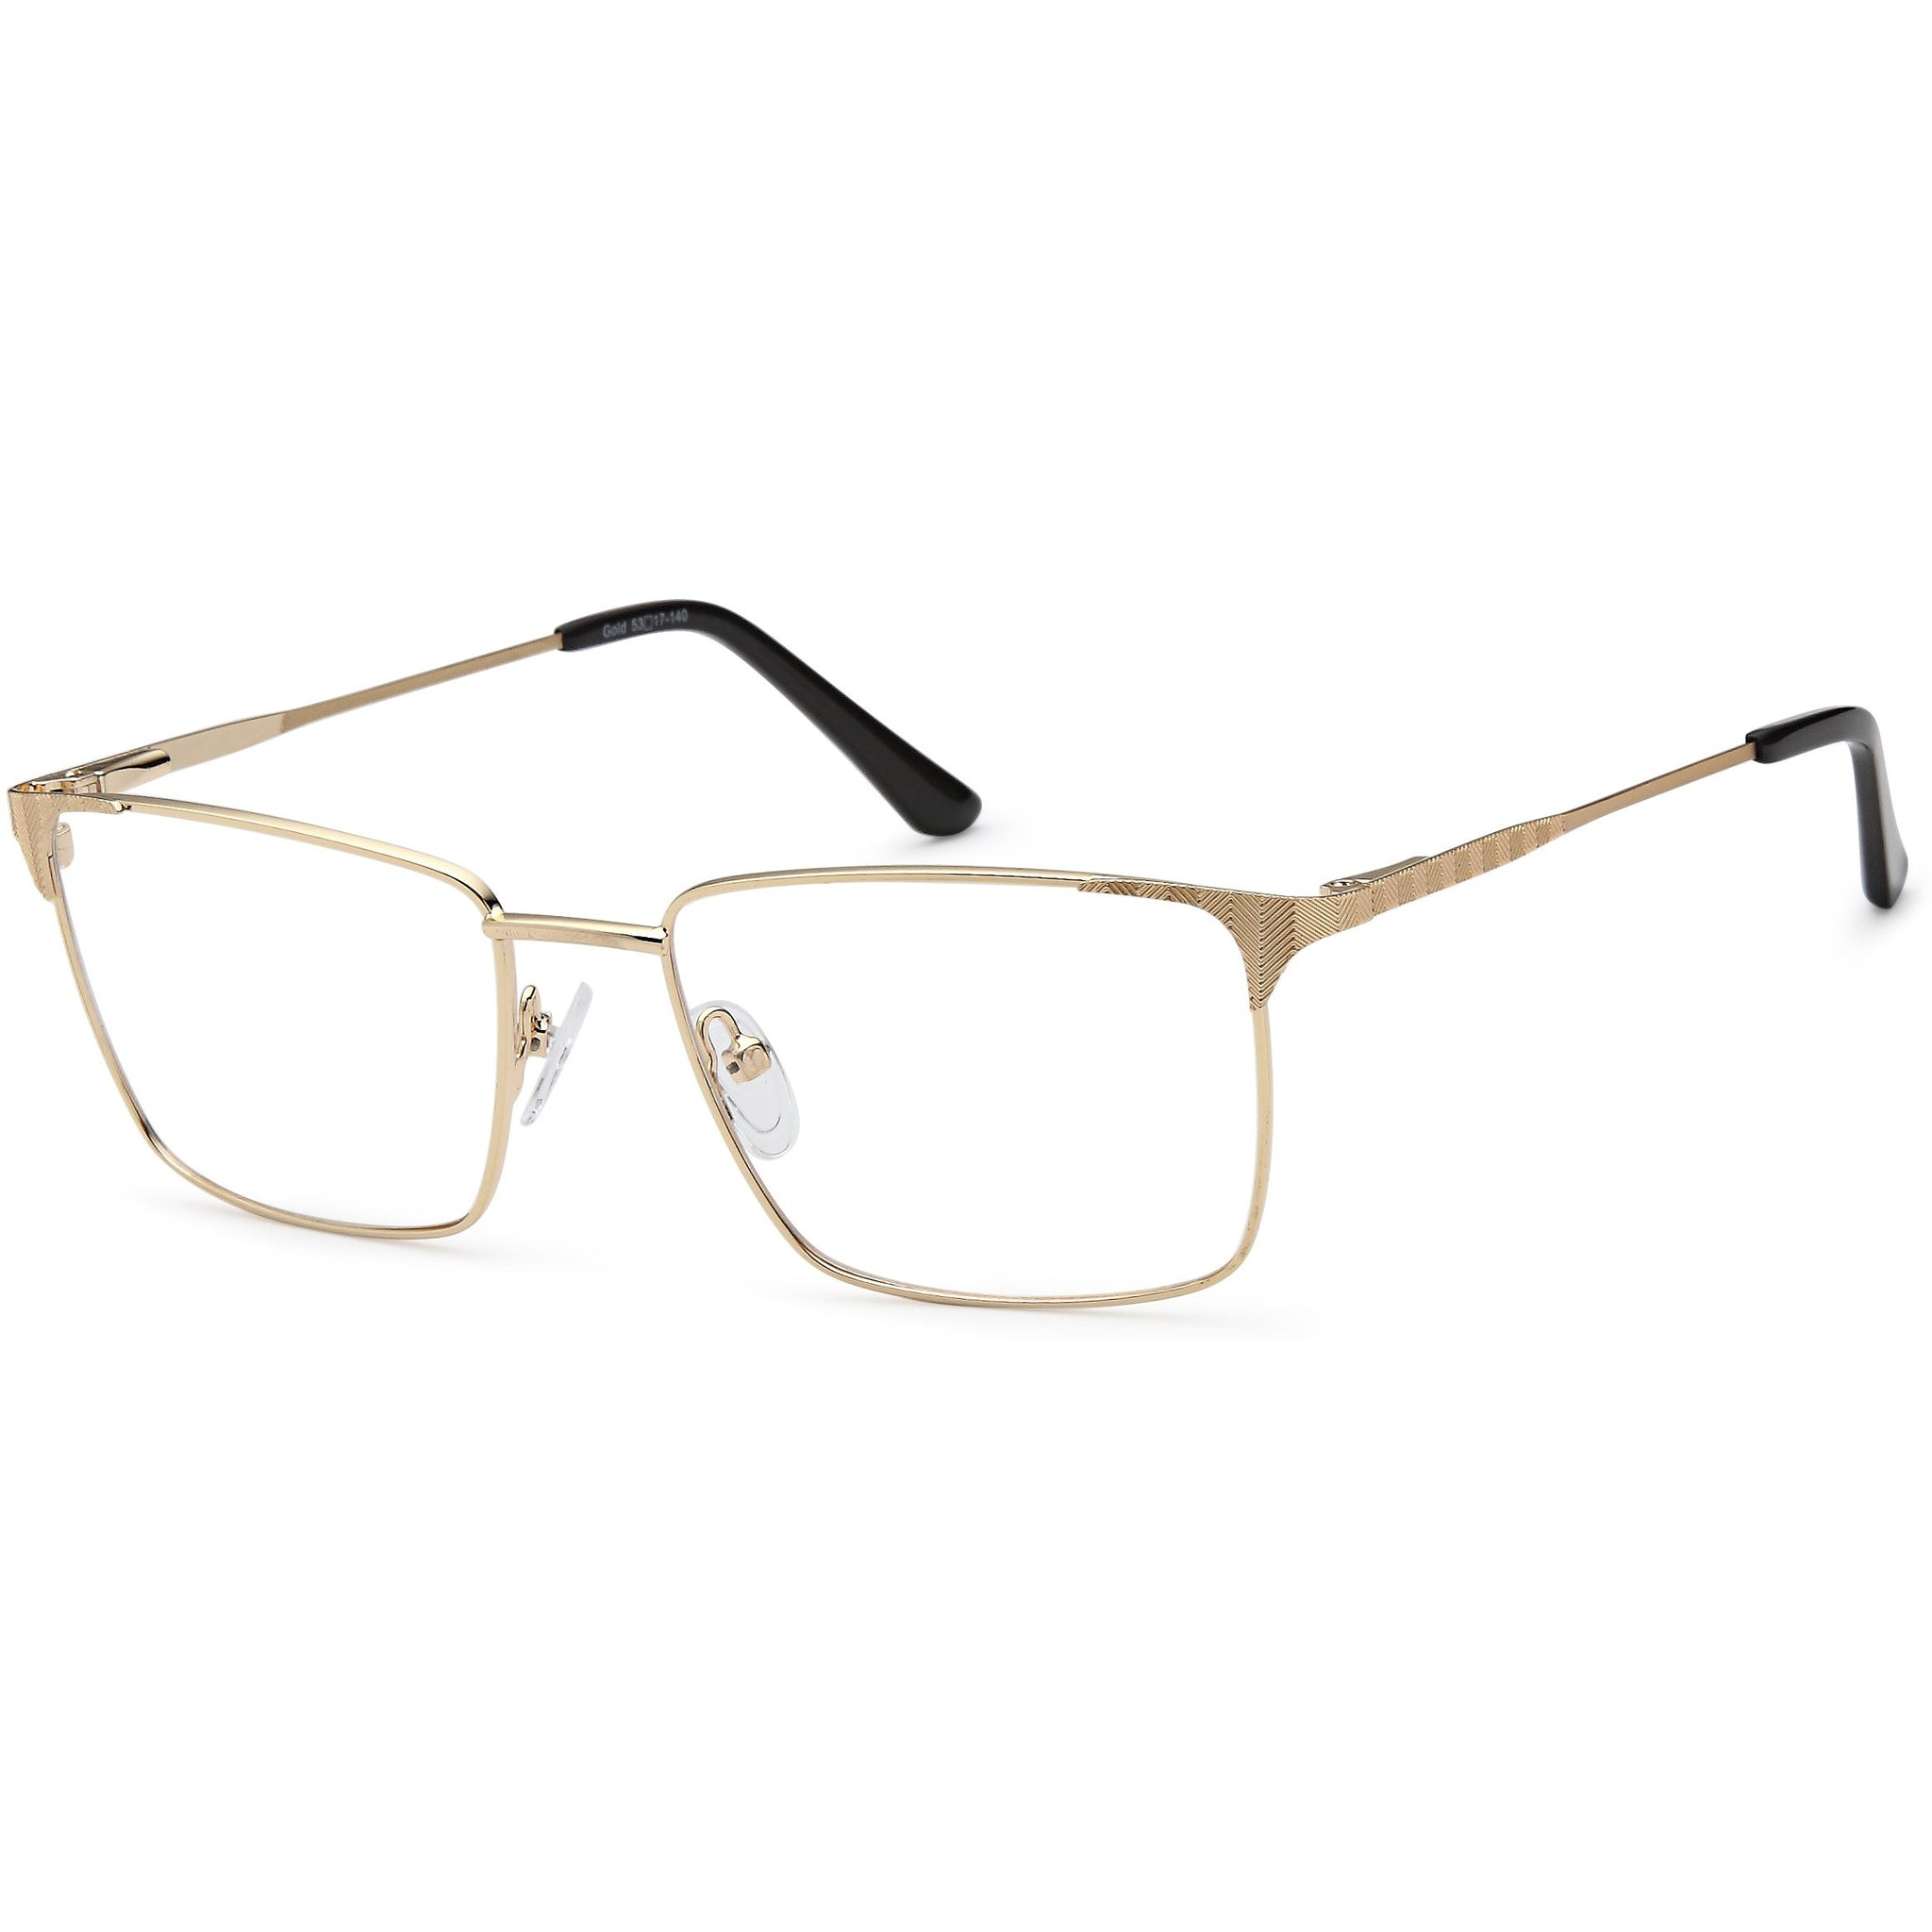 Leonardo Prescription Glasses DC 185 Eyeglasses Frame